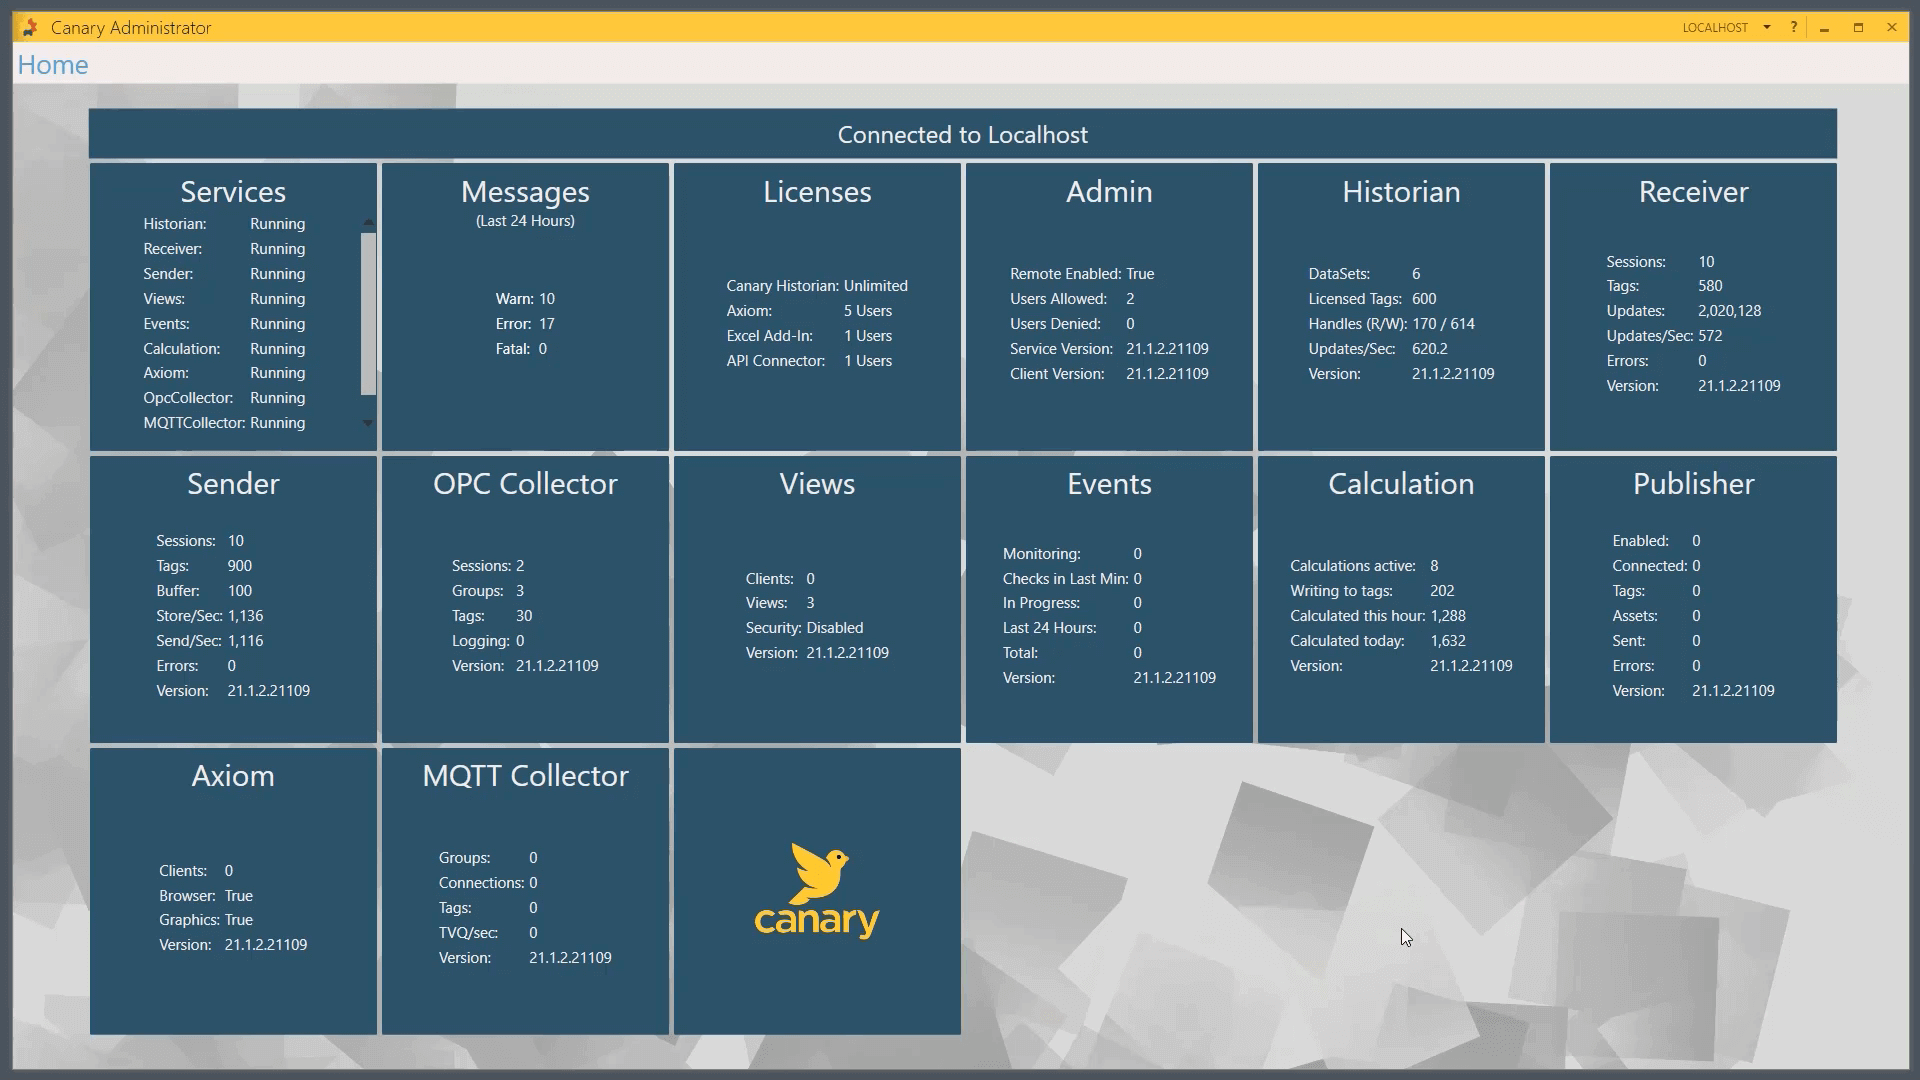 Setting up Canary Administrator and MQTT Collector